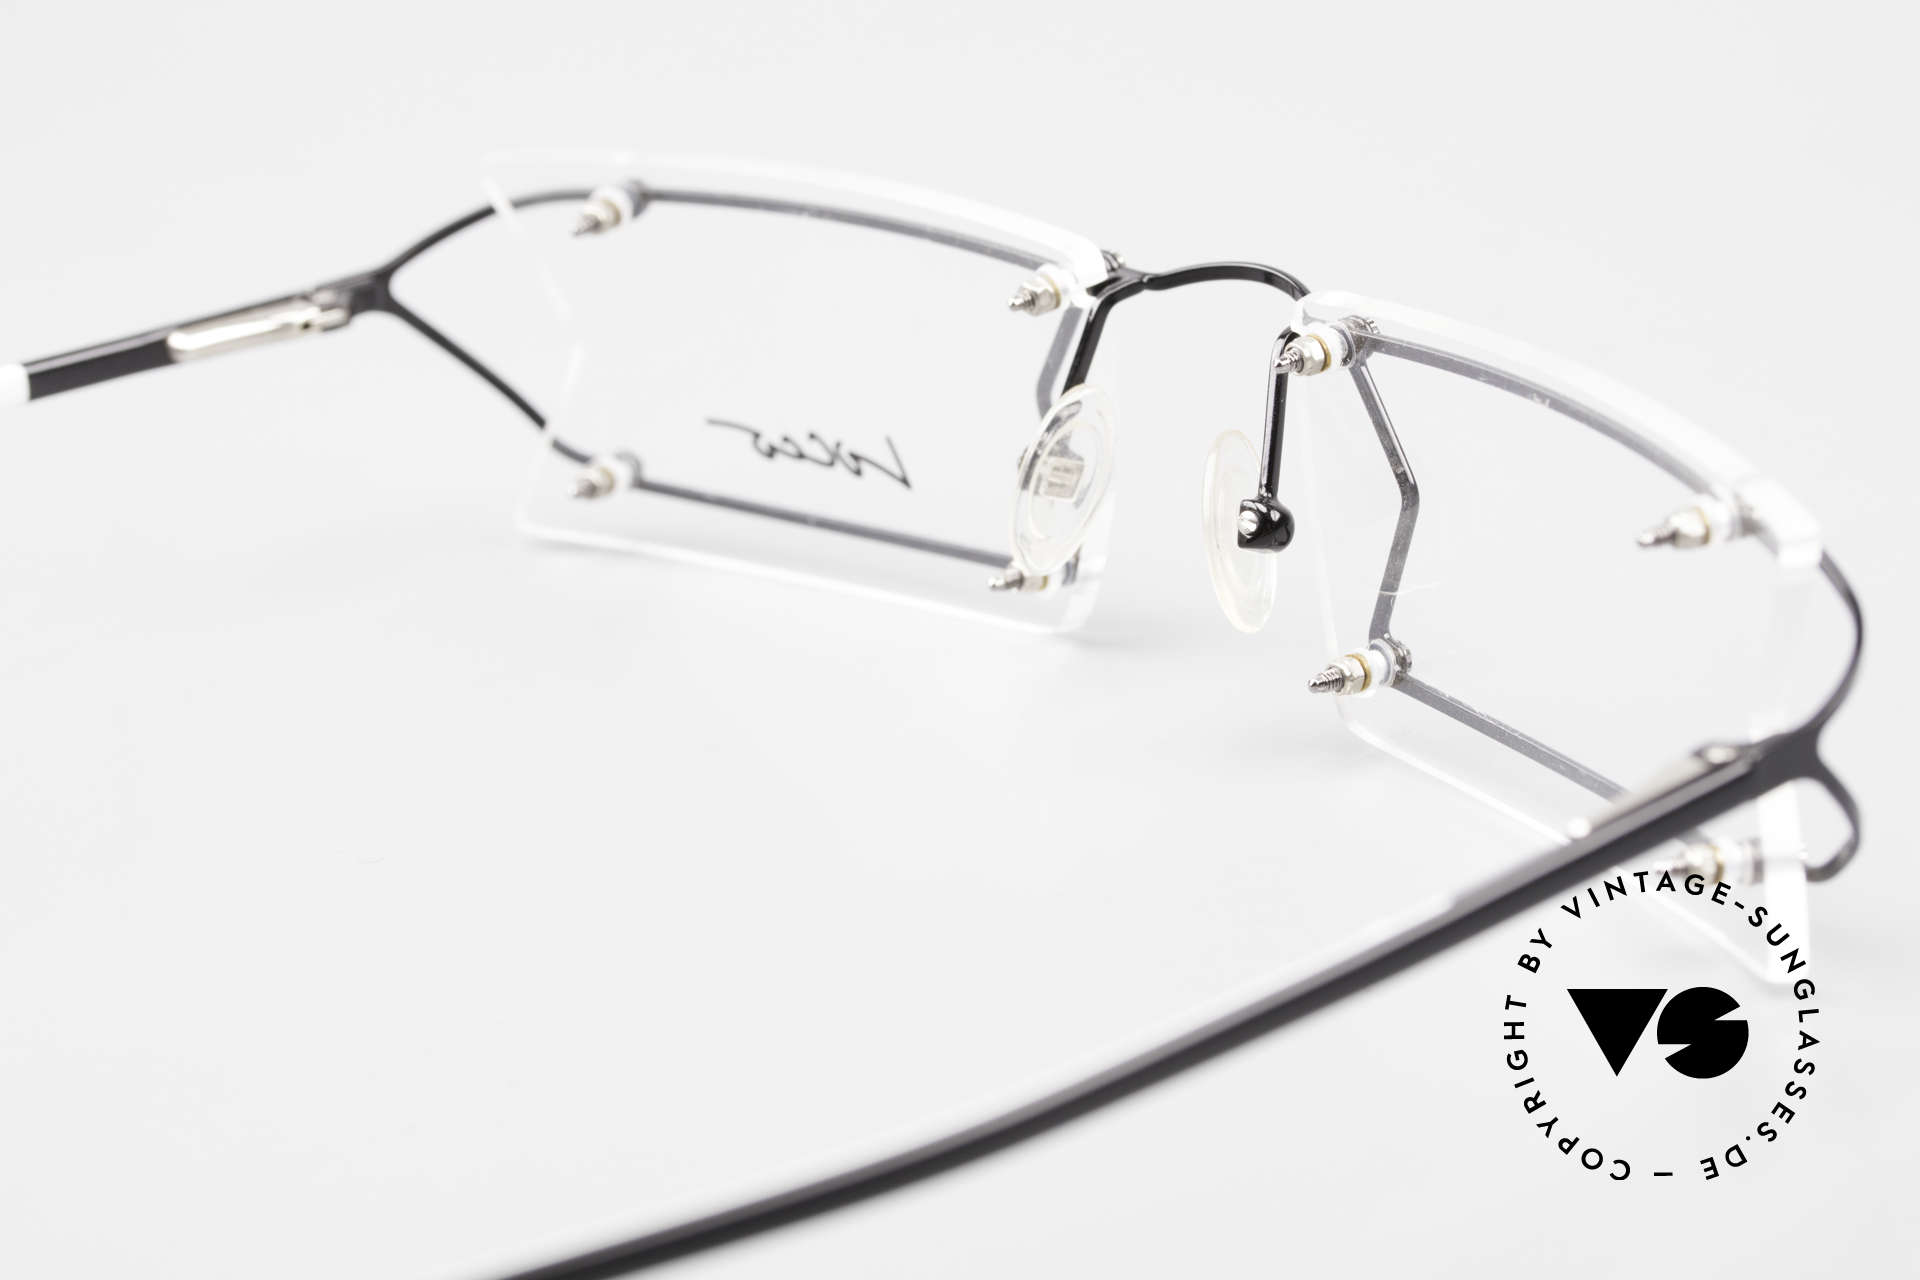 Locco Pinot Crazy 90's Rimless Eyeglasses, Size: medium, Made for Men and Women